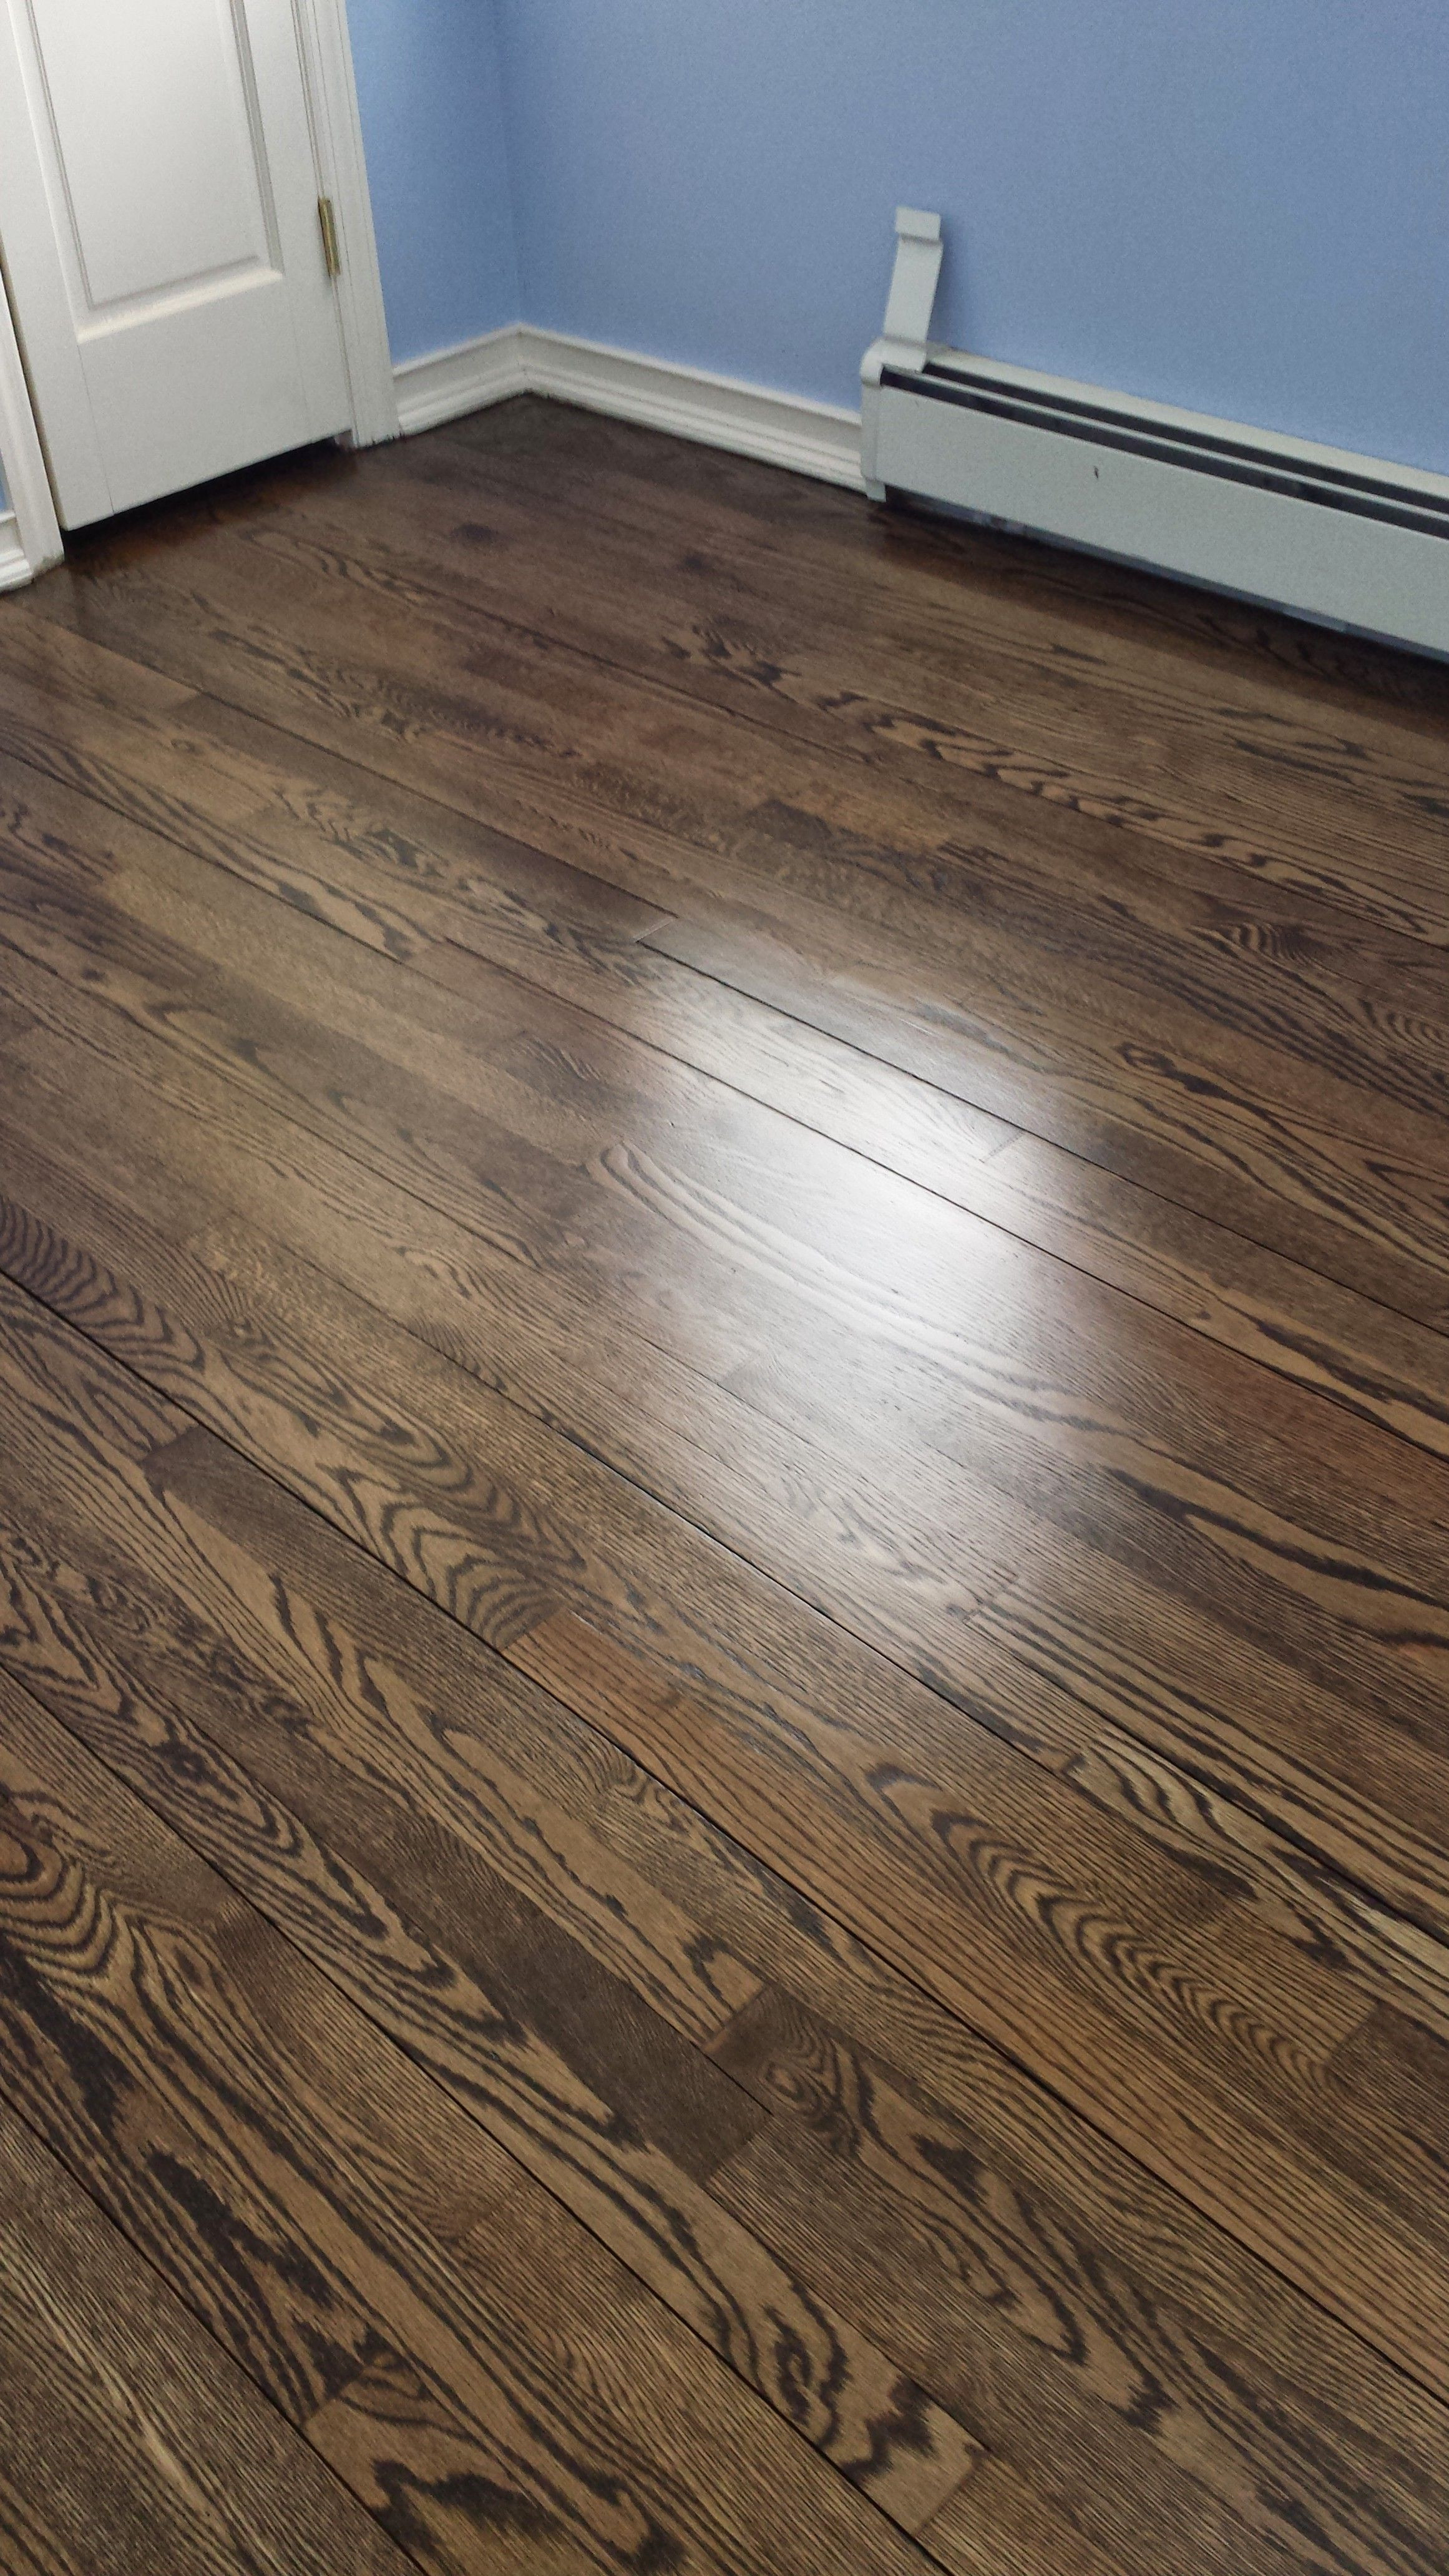 hardwood flooring below grade of inexpensive hardwood flooring floor plan ideas in hardwood floor refinishing is an affordable way to spruce up your space without a full replacement